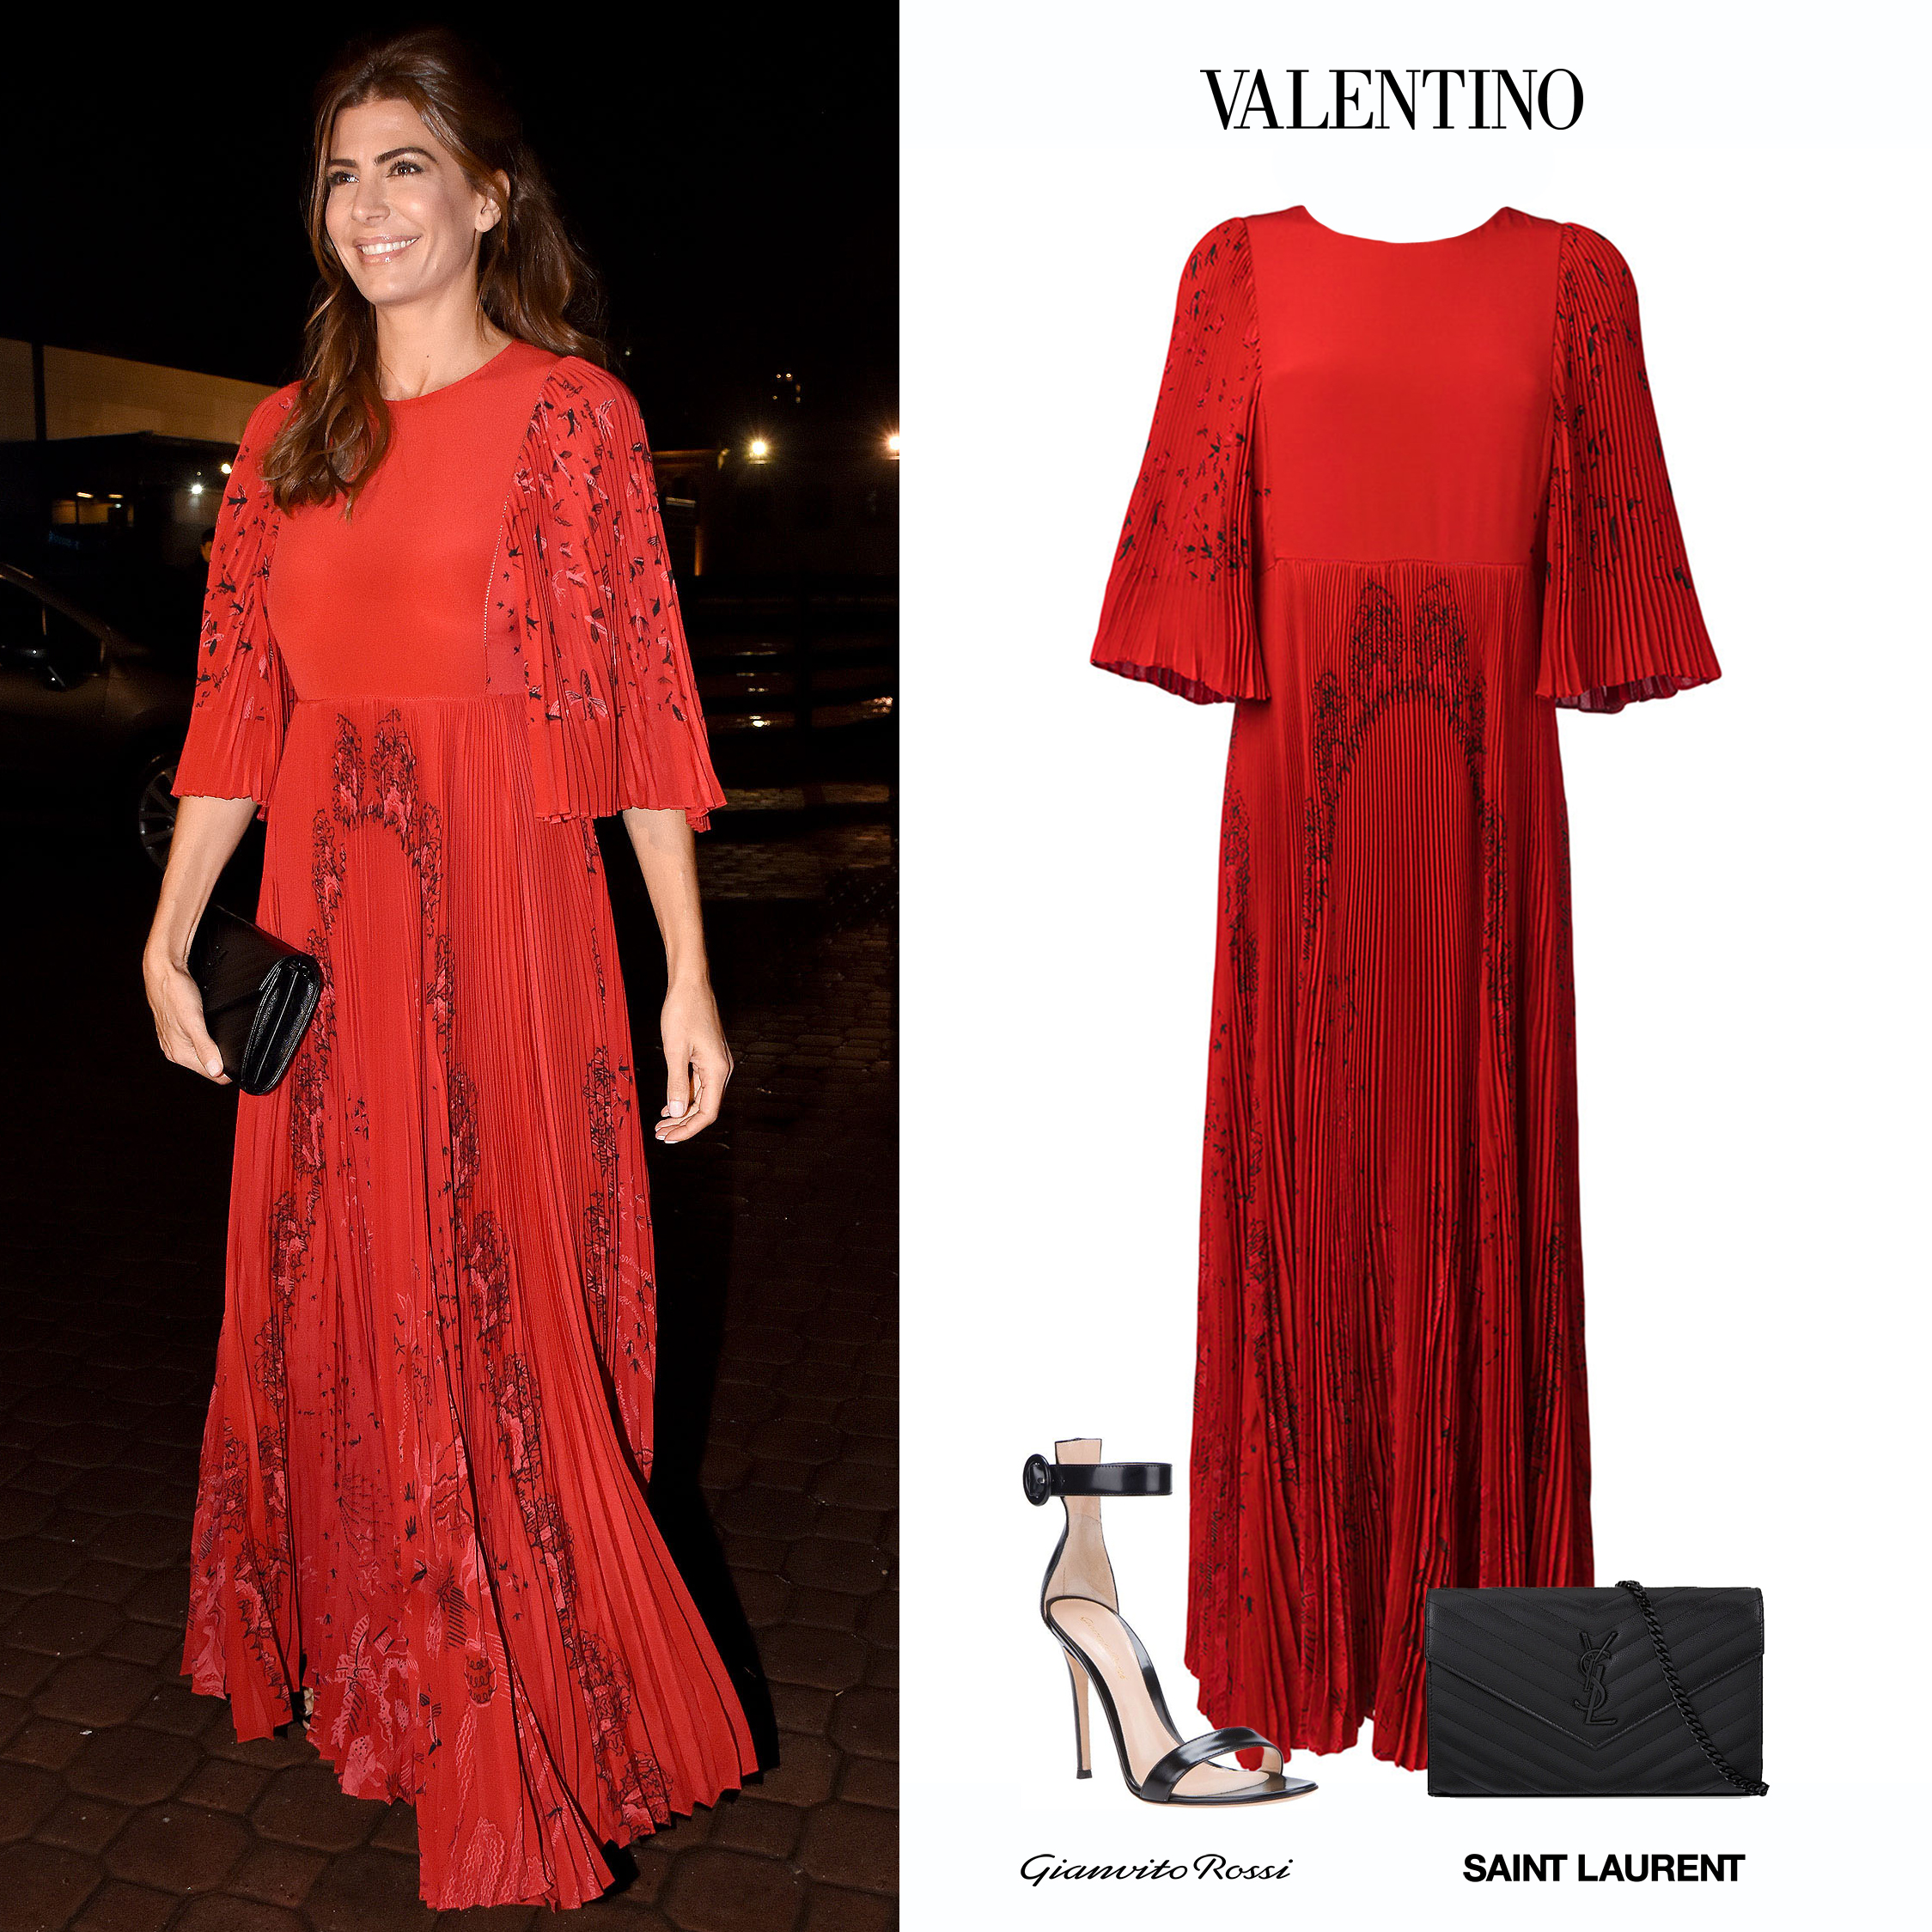 Juliana_Awada_Fundación_Voz_Vestido_Rojo_Valentino_Spring_2017_Long_Sleeve_Red_Dress_Gianvito_Rossi_Sandals_Black_Sandalias_Negras_YSL_Saint_Laurent_Clutch_Bag_Black_Negra.jpg